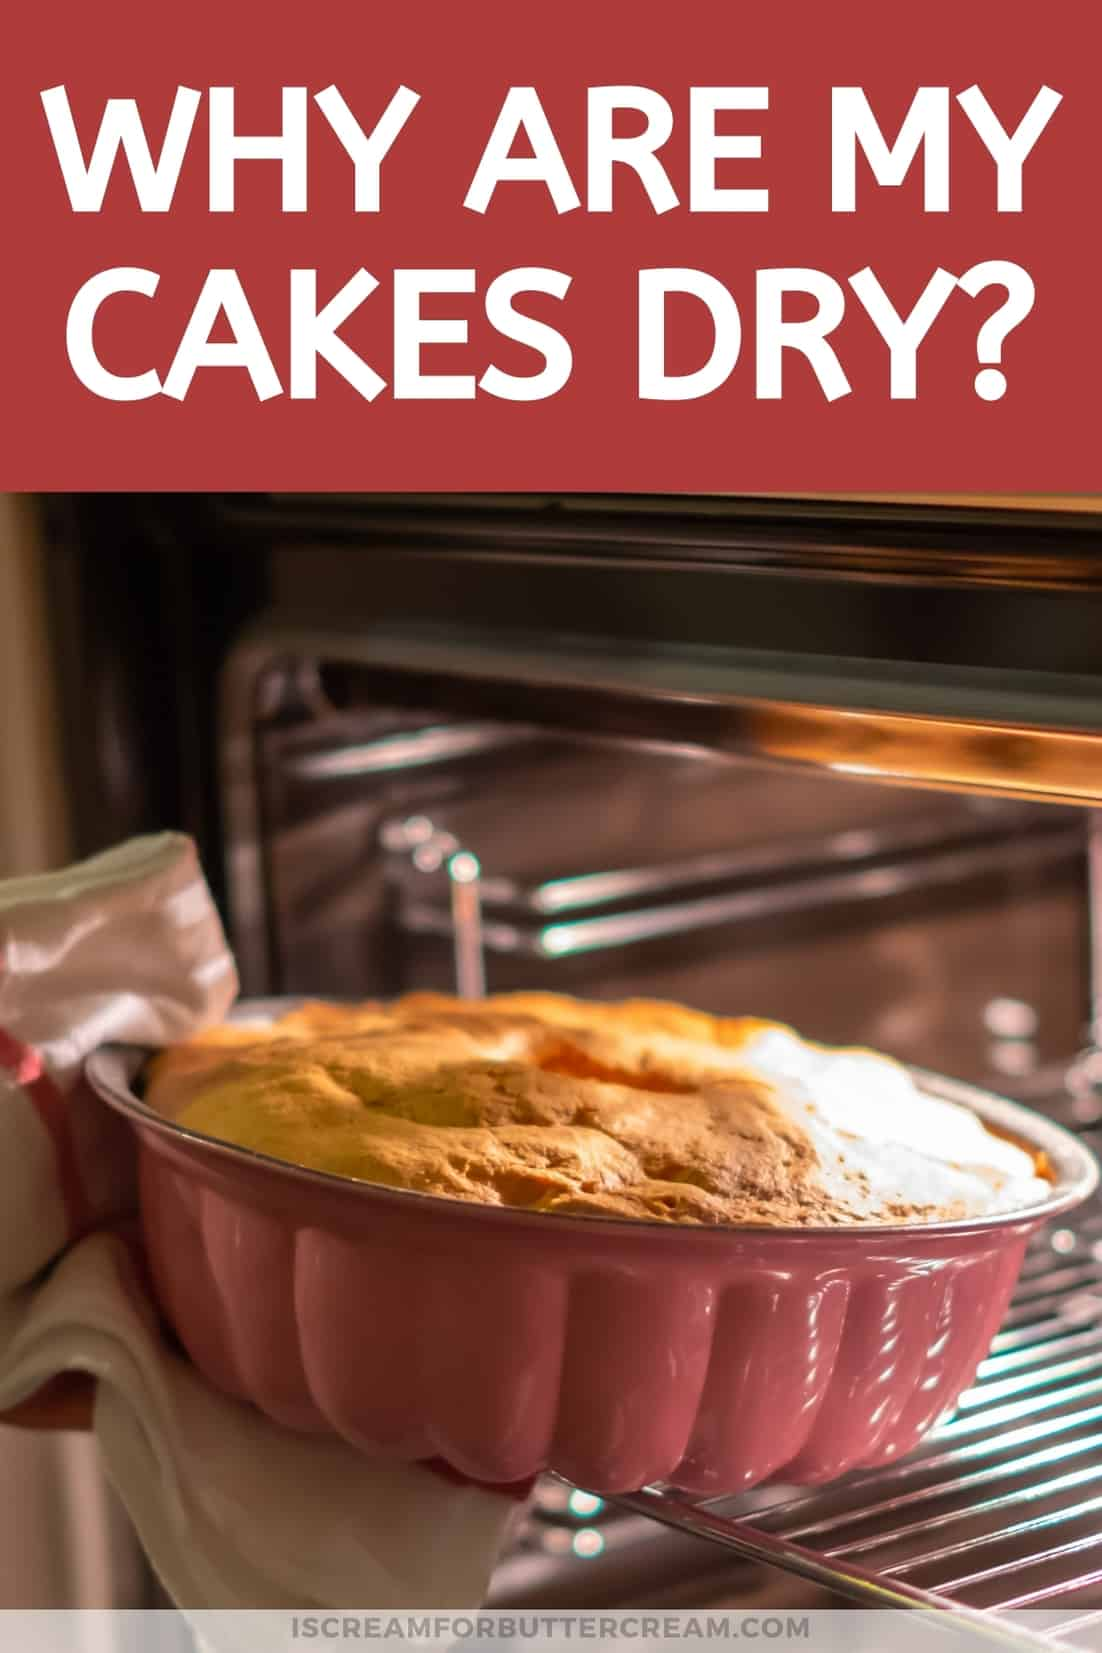 why are my cakes dry pinterest graphic with cake and print